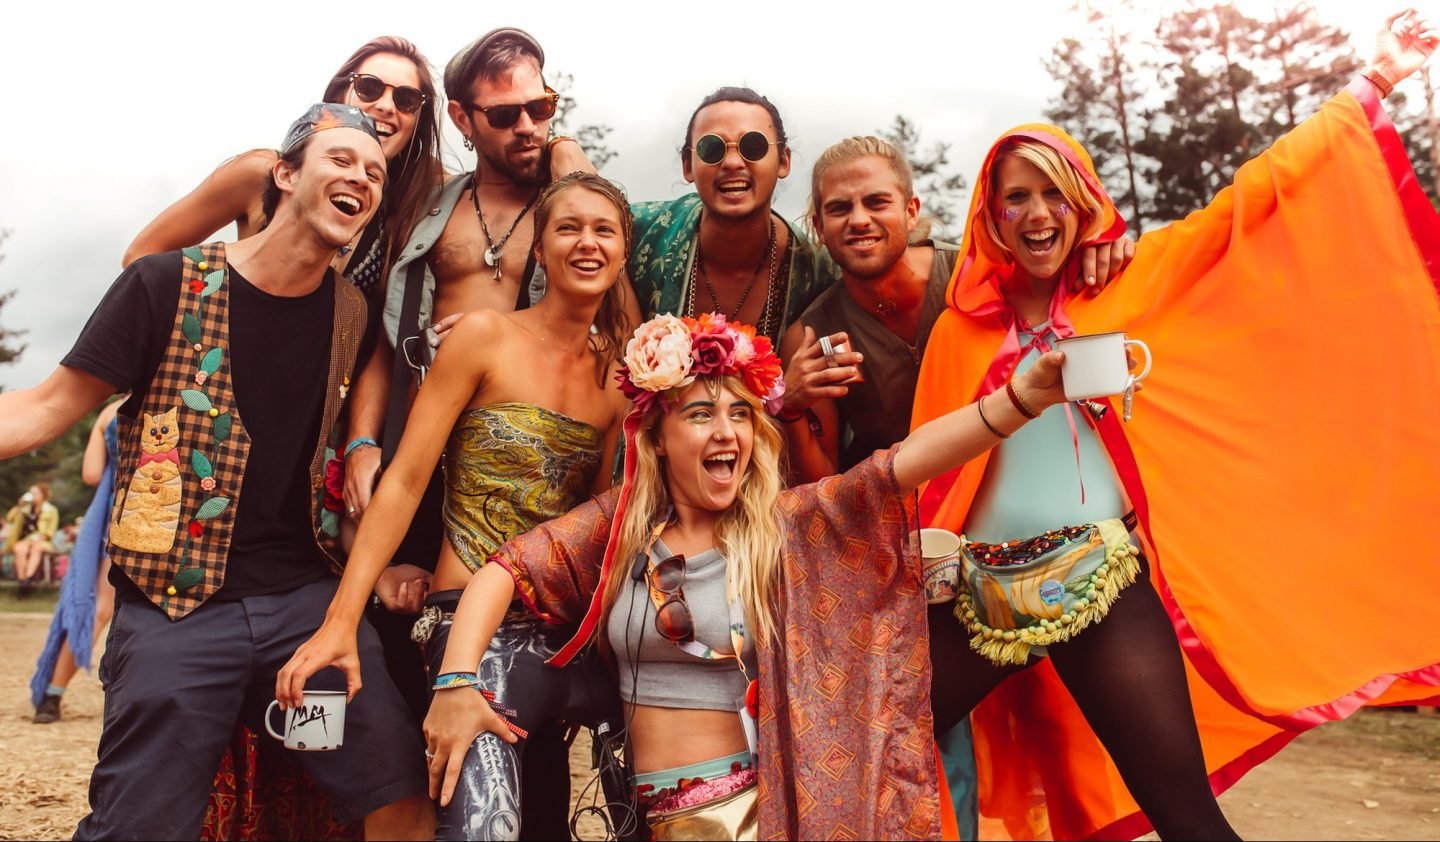 That Festival Life - Festival Blog by Dulcie Horn